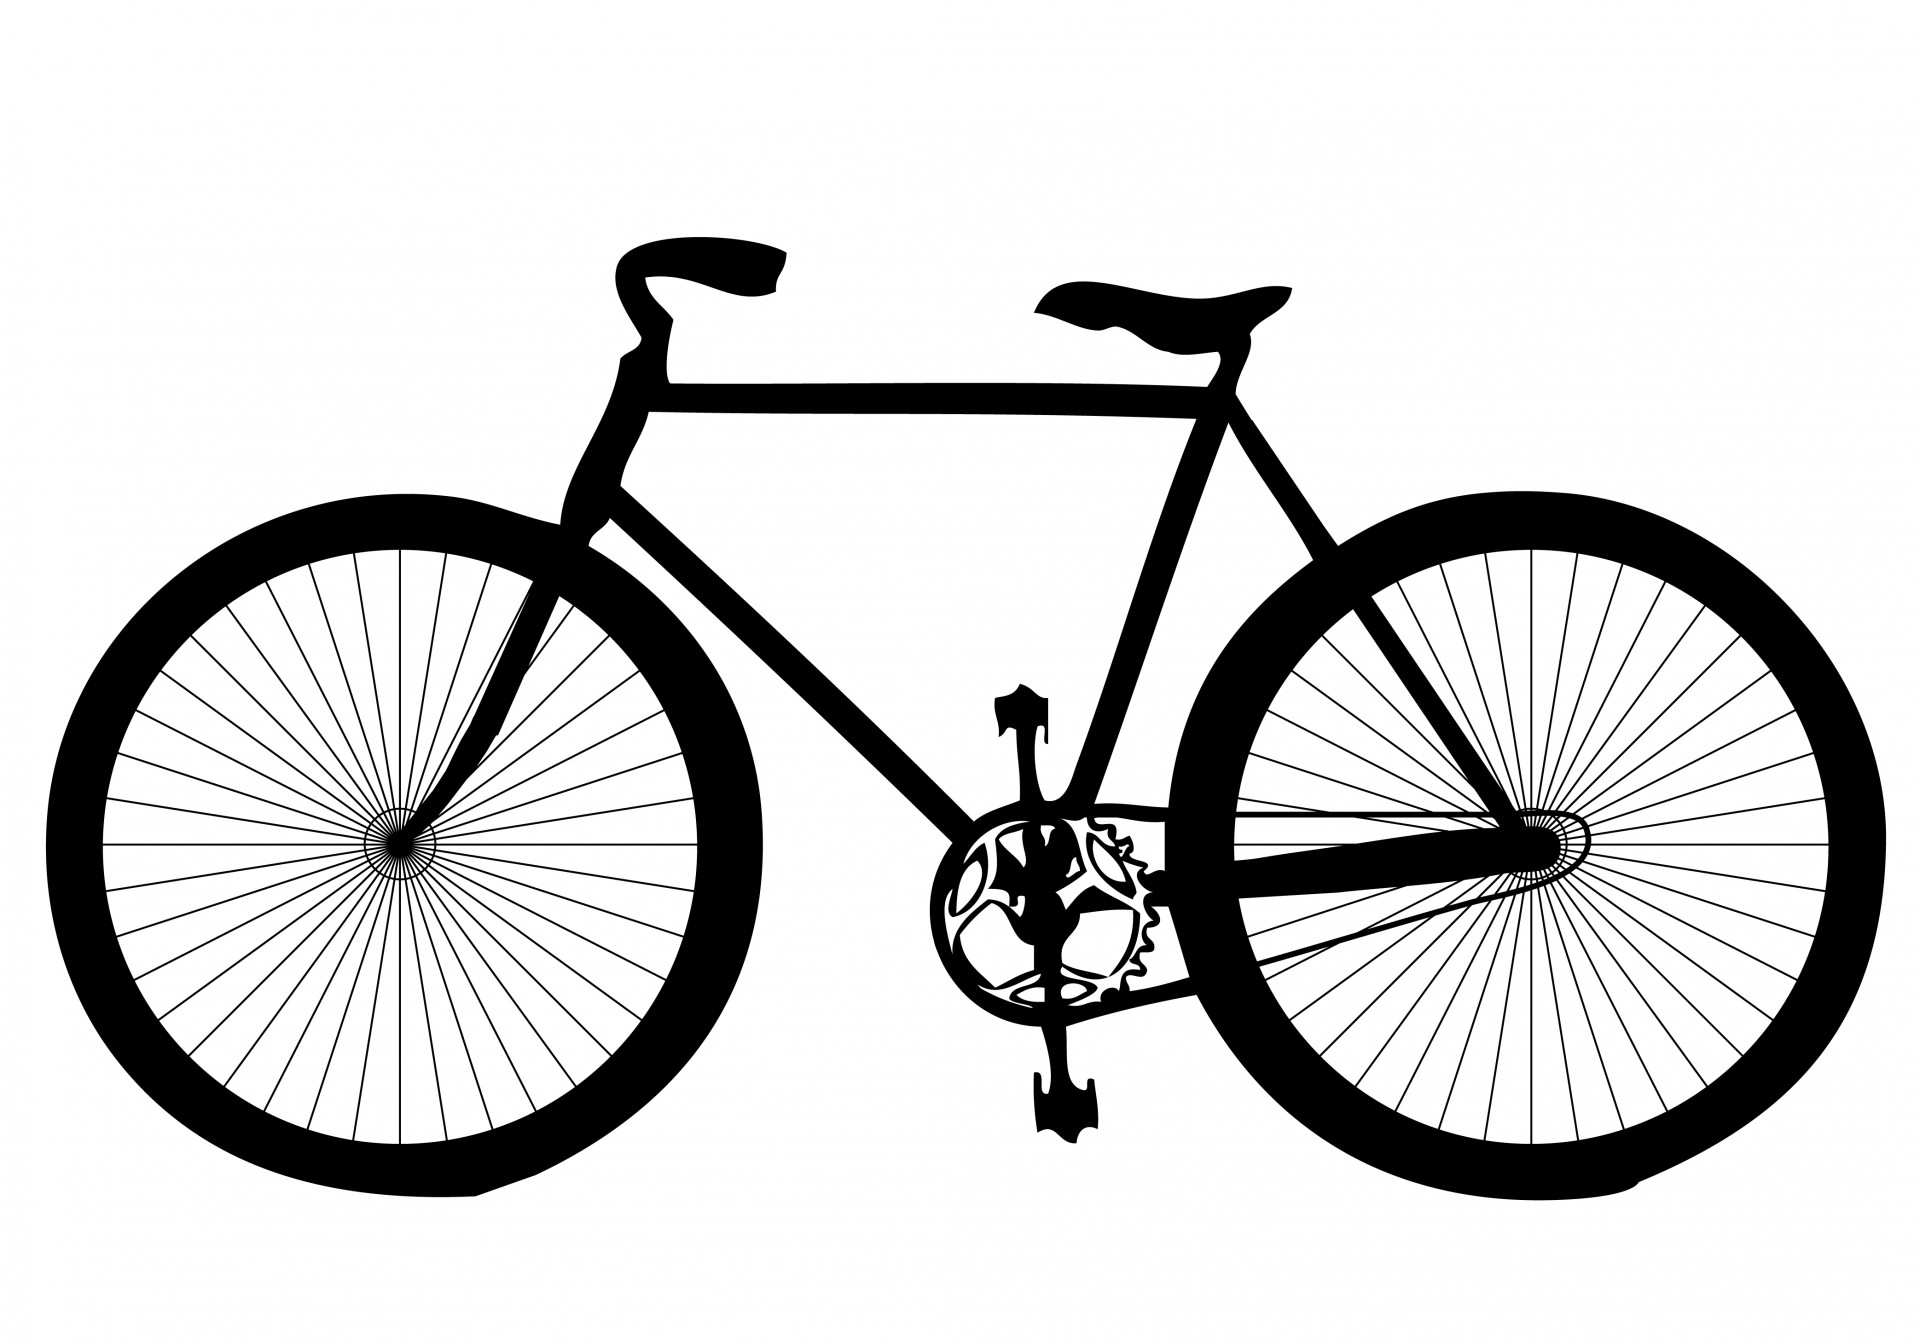 Bicycle clip art girirejo